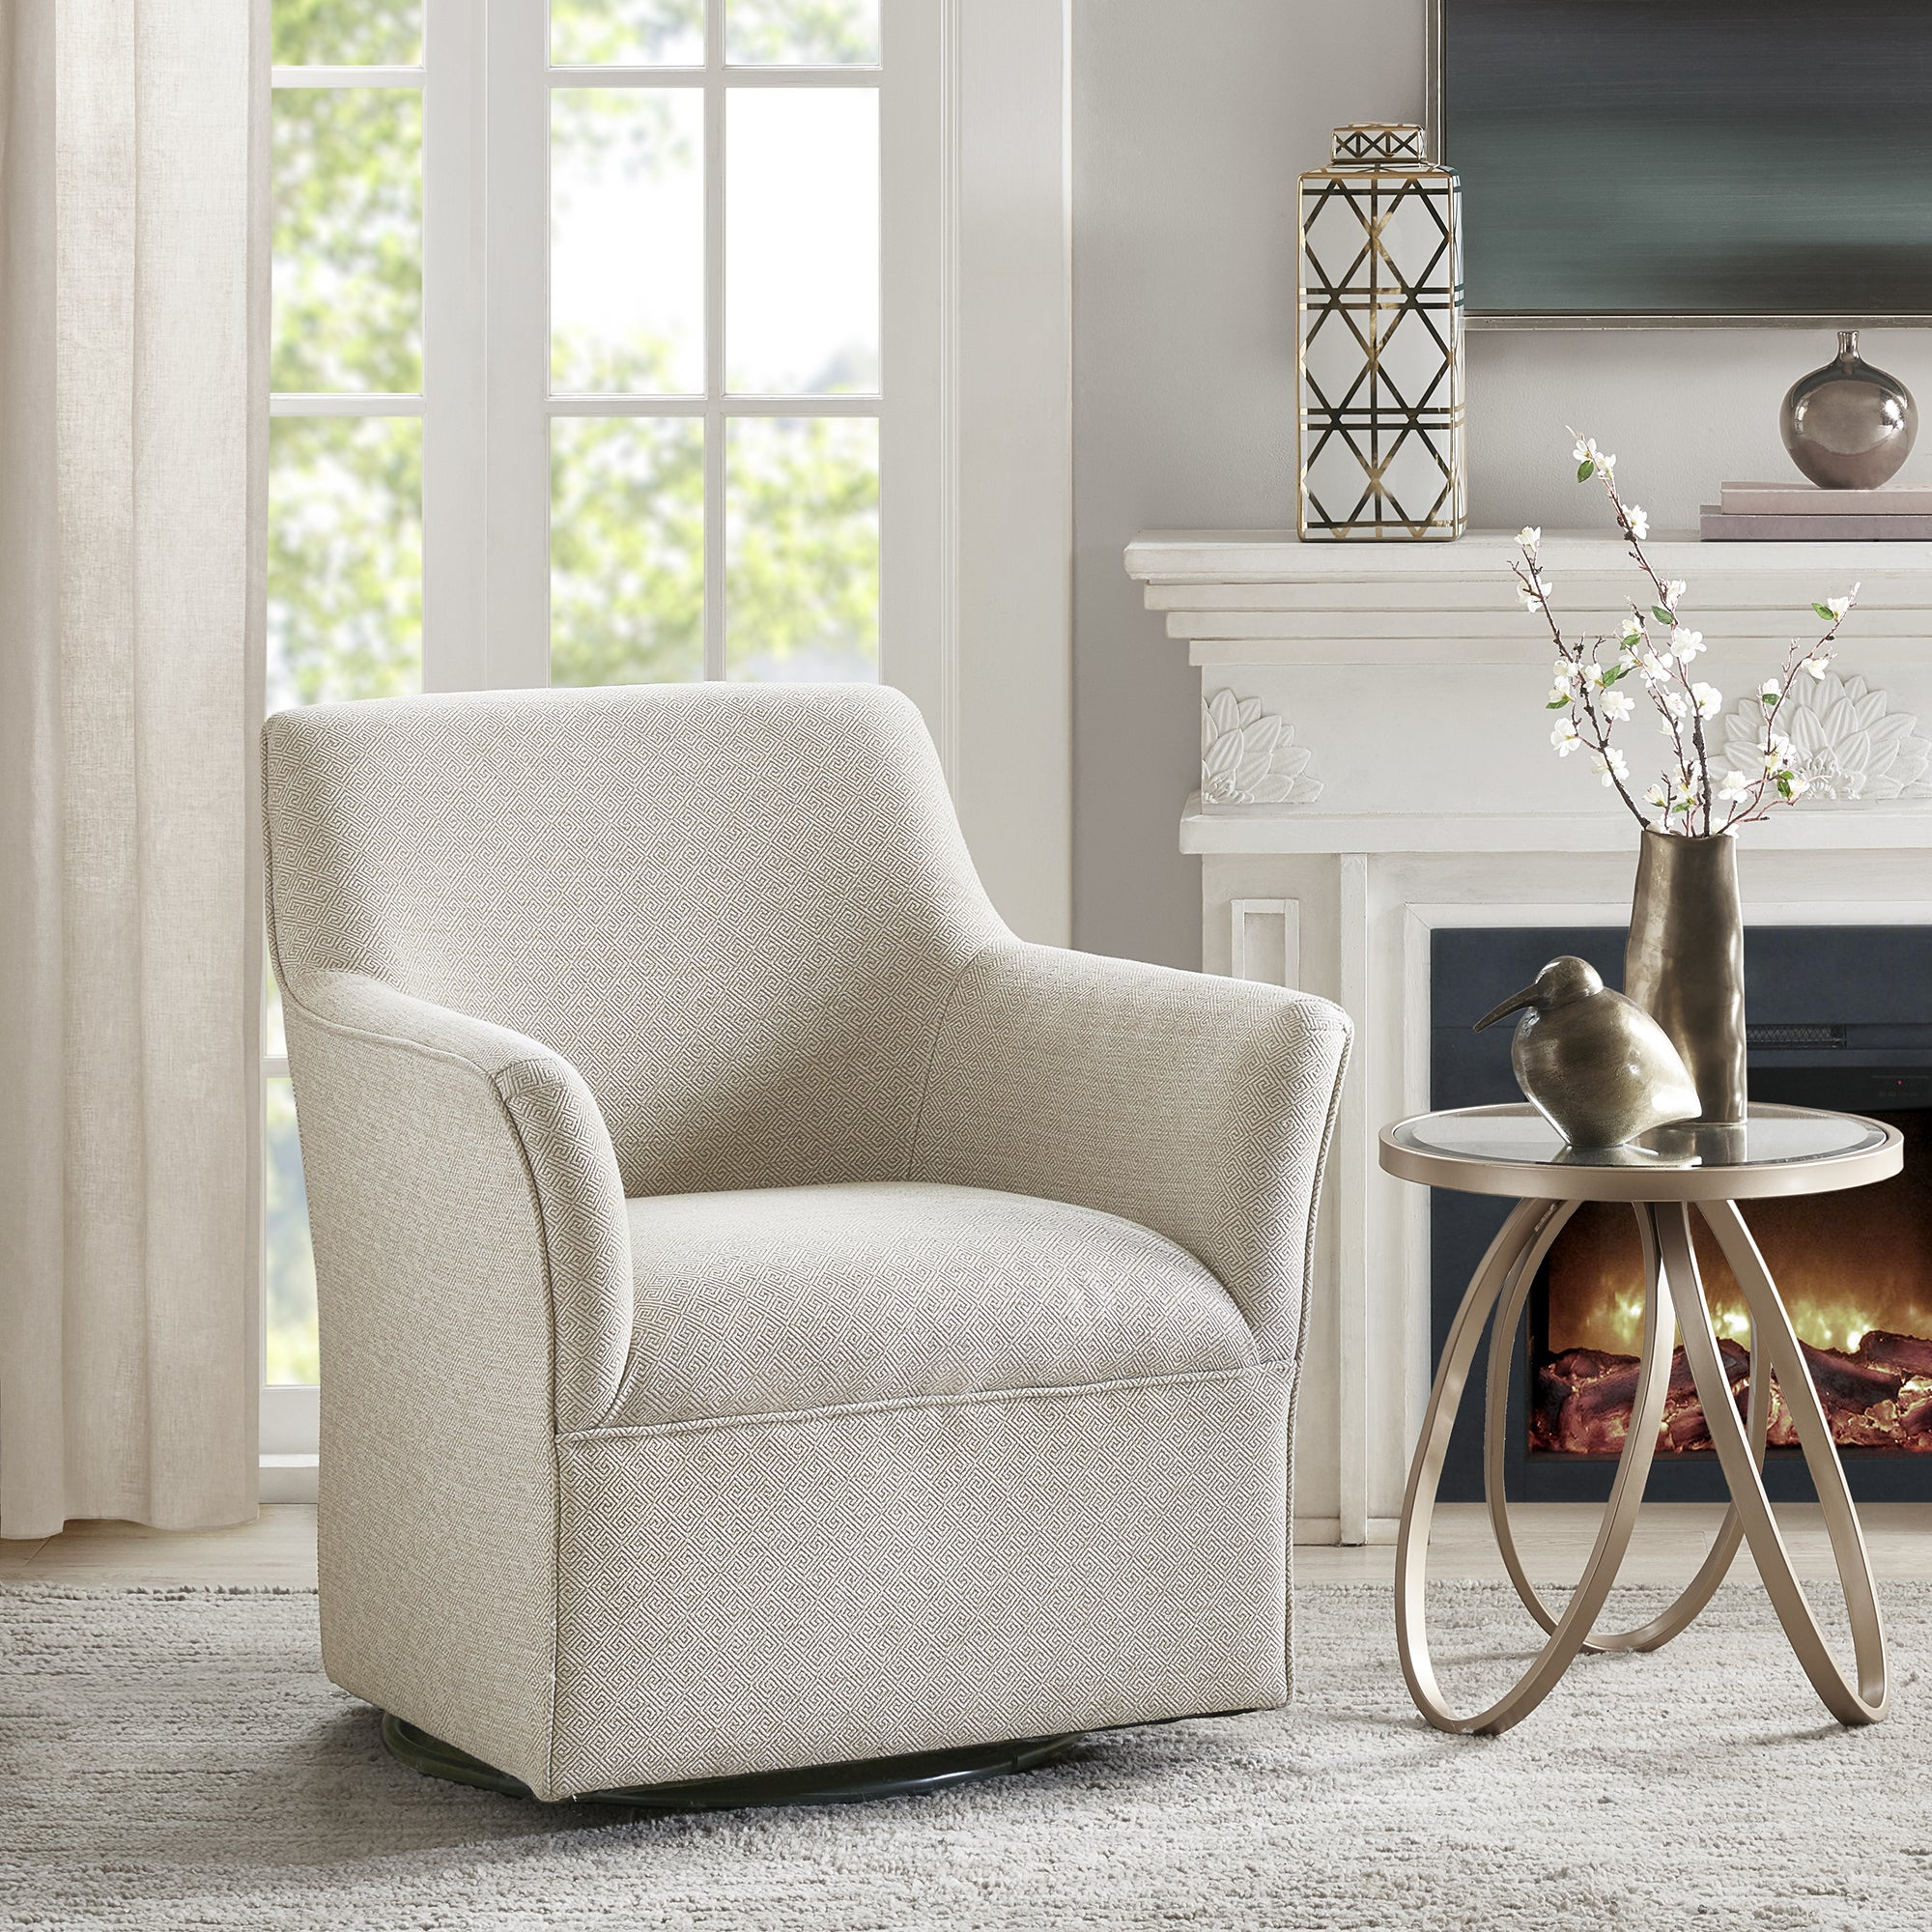 Shop Madison Park Caddy Cream Swivel Glider Chair - Free Shipping ...